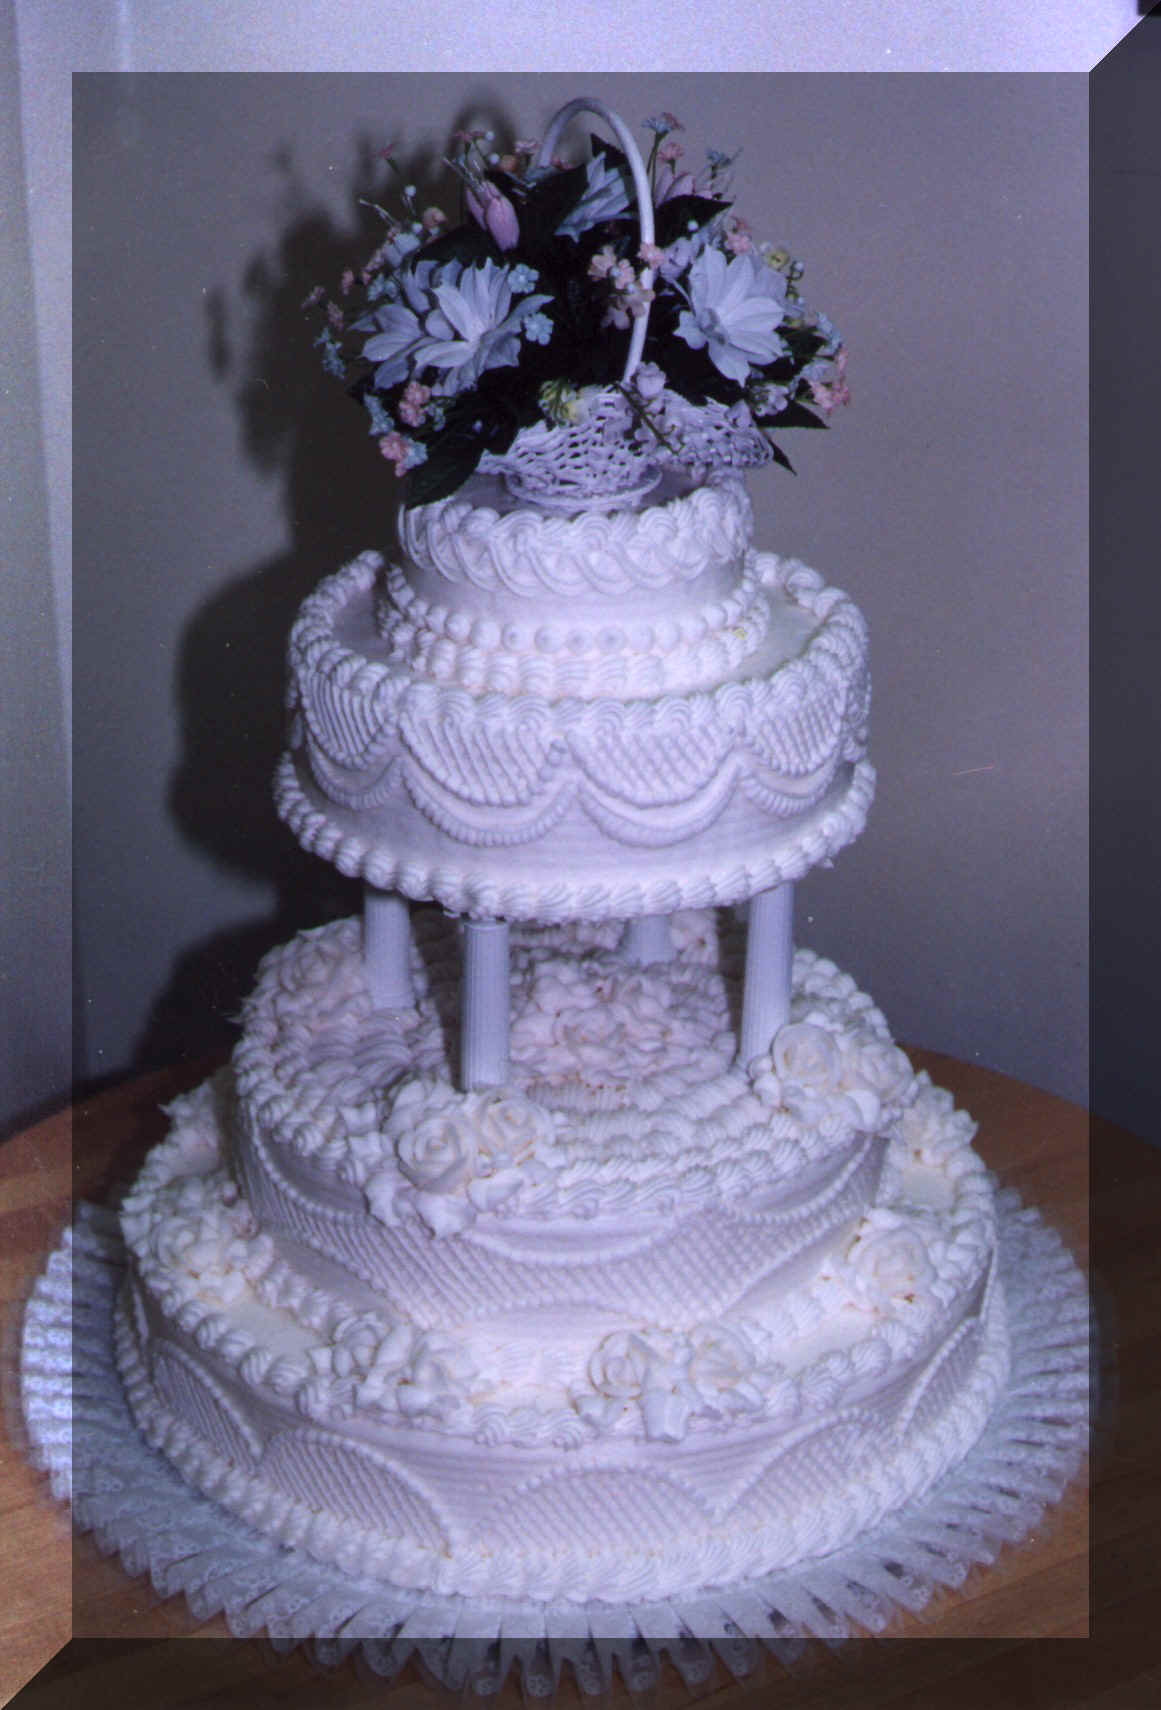 Wedding Cakes At Walmart  Walmart Wedding Cake Prices